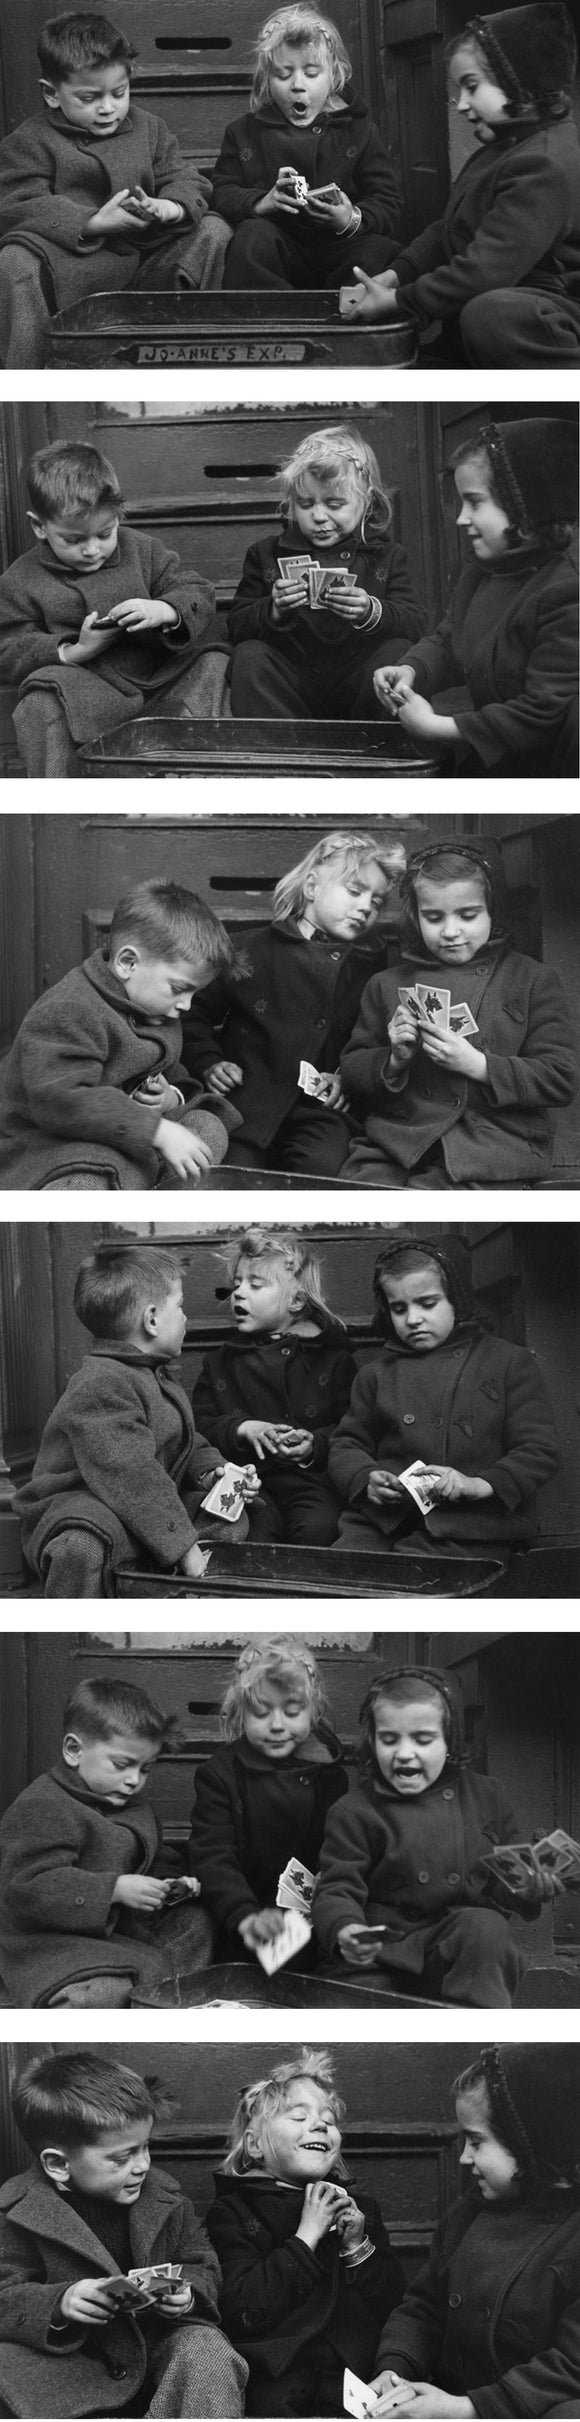 Card Players, New York City, 1947 Photograph (Set of 6) - ImageExchange